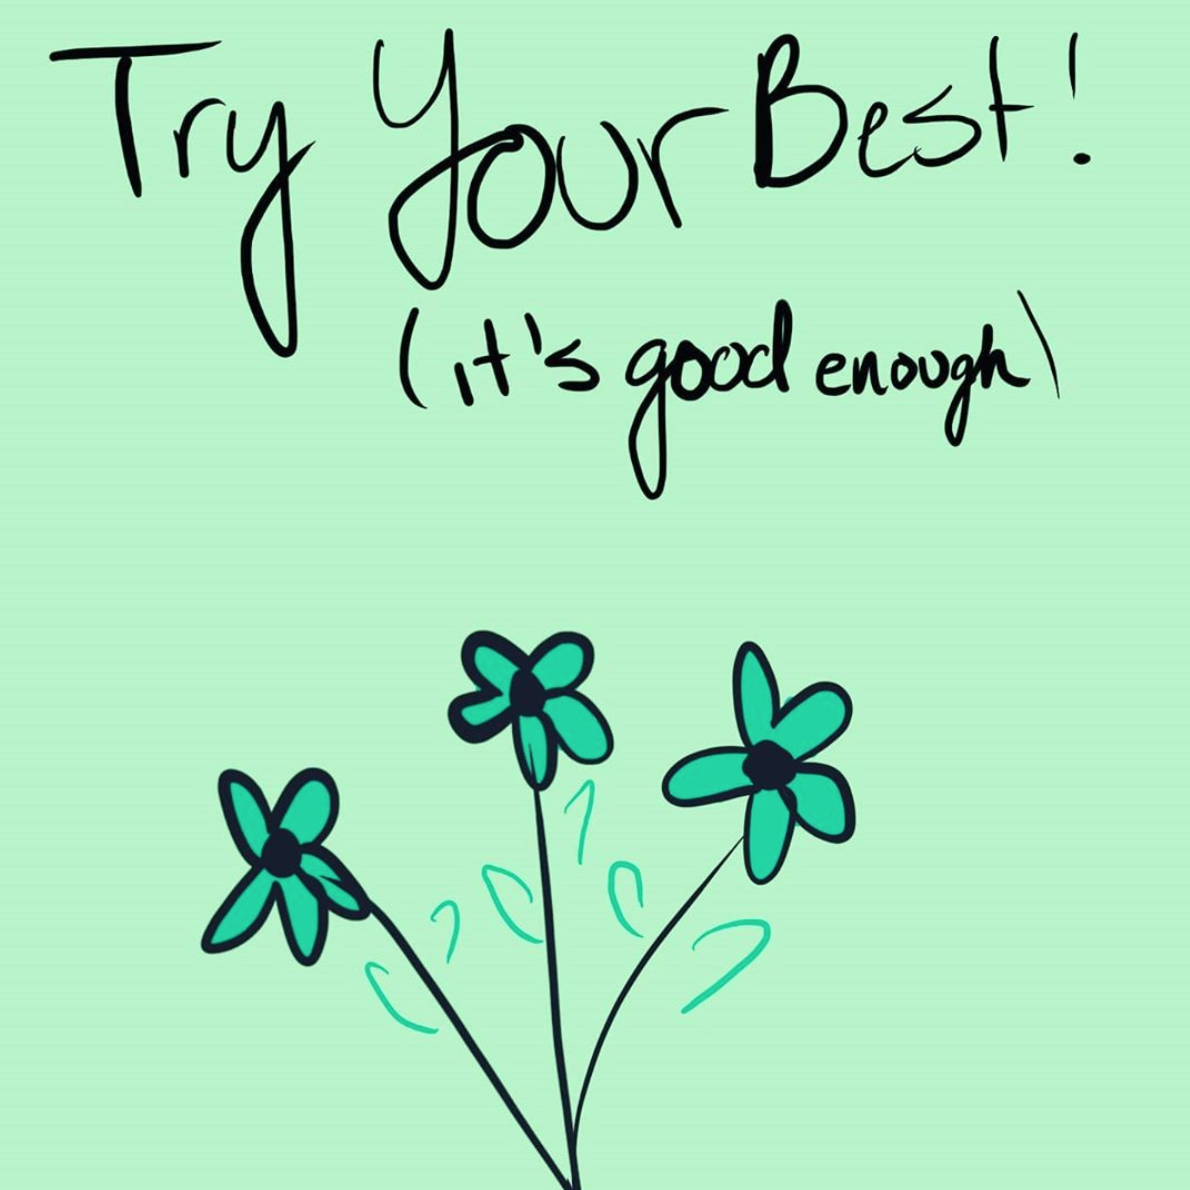 [Image] Try your best, it's good enough